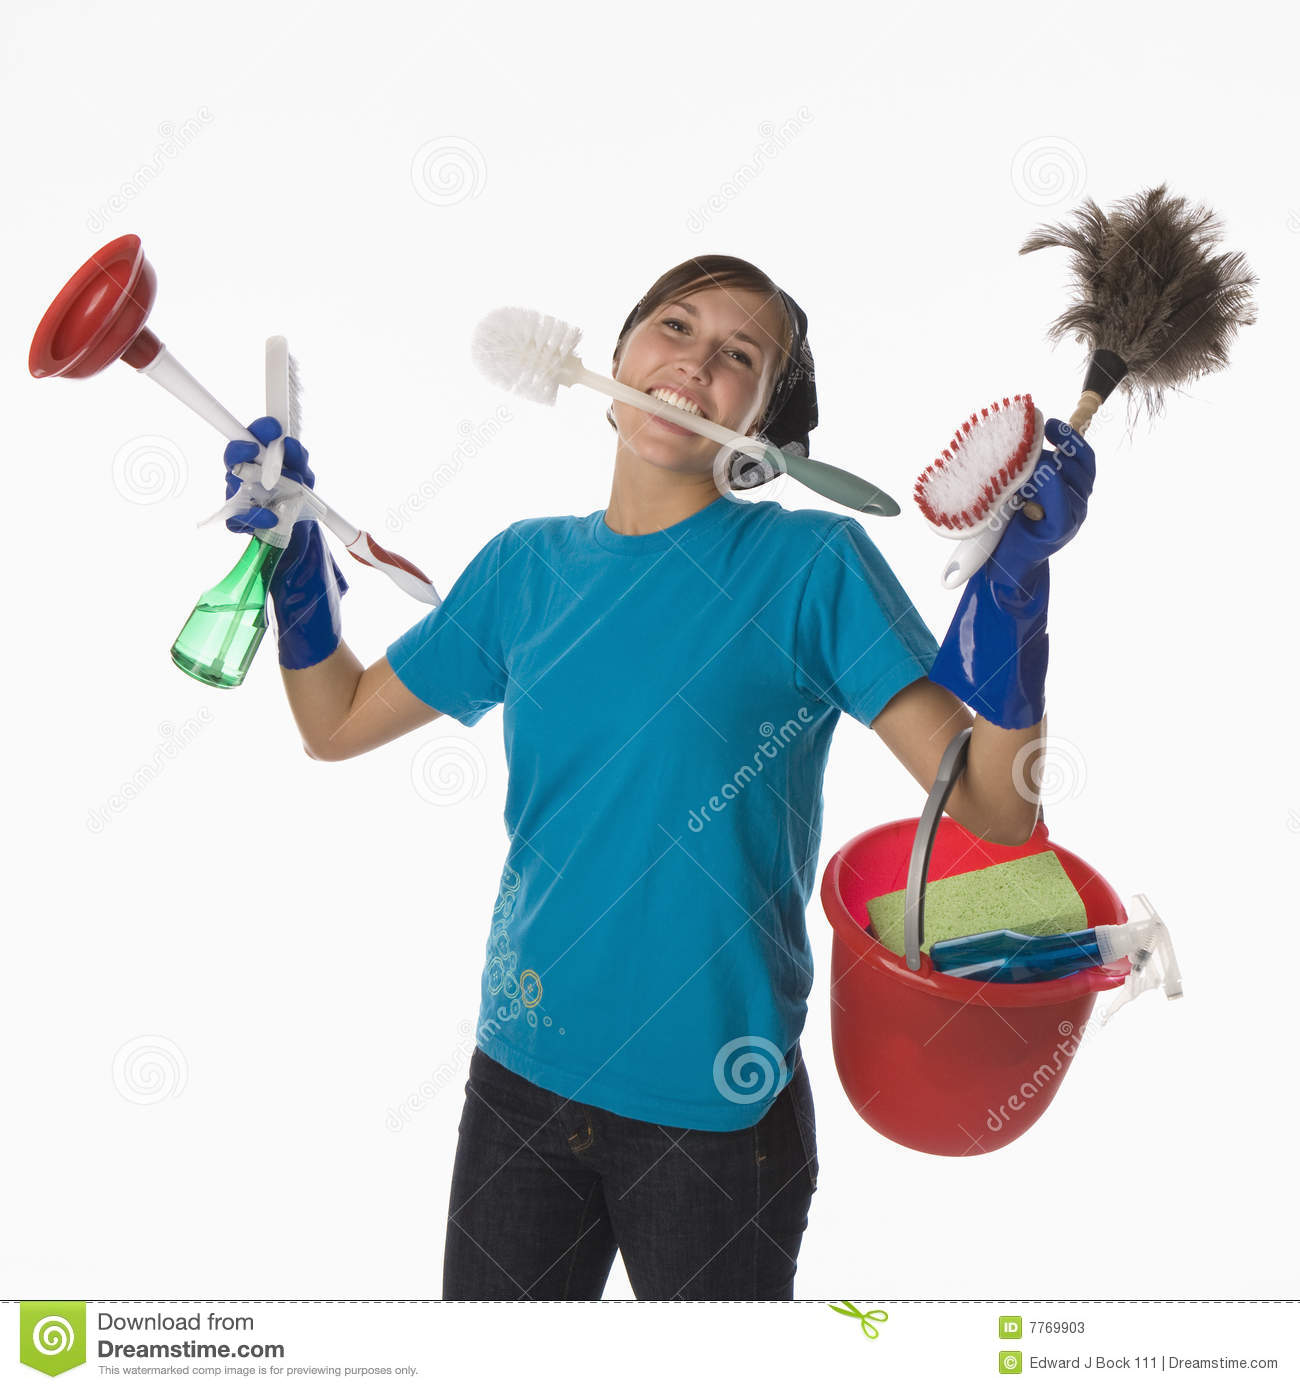 Huis Schoonmaken Stappenplan House Cleaning Stock Image. Image Of Cleaning, Chores